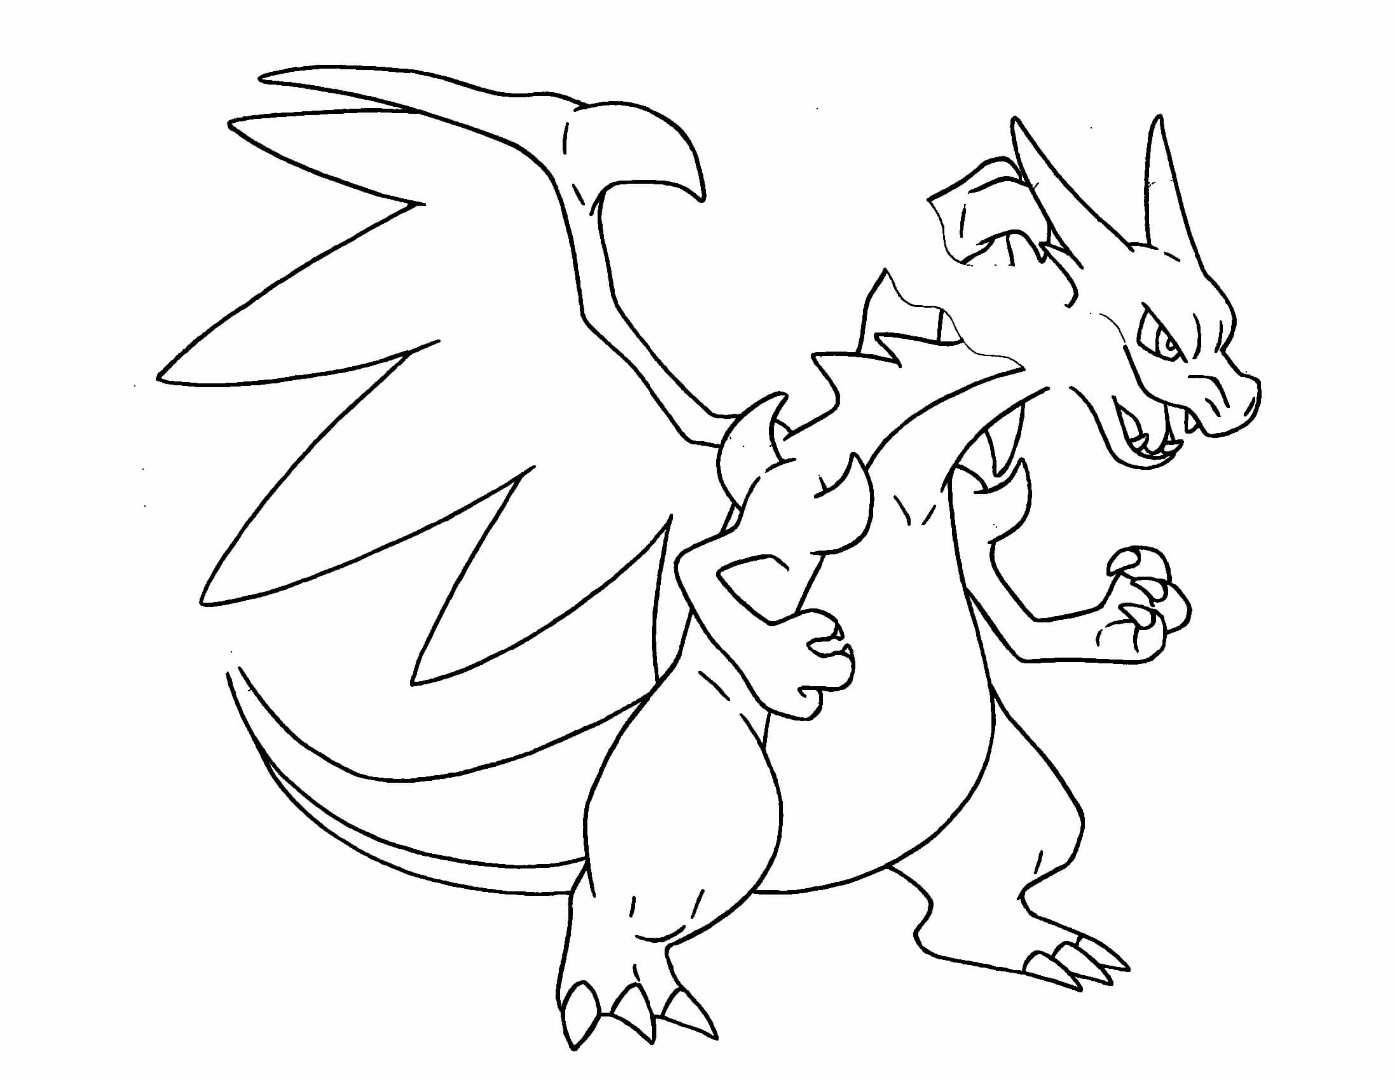 charizard coloring pages to print 29 pokemon coloring pages charizard download coloring sheets print to charizard pages coloring